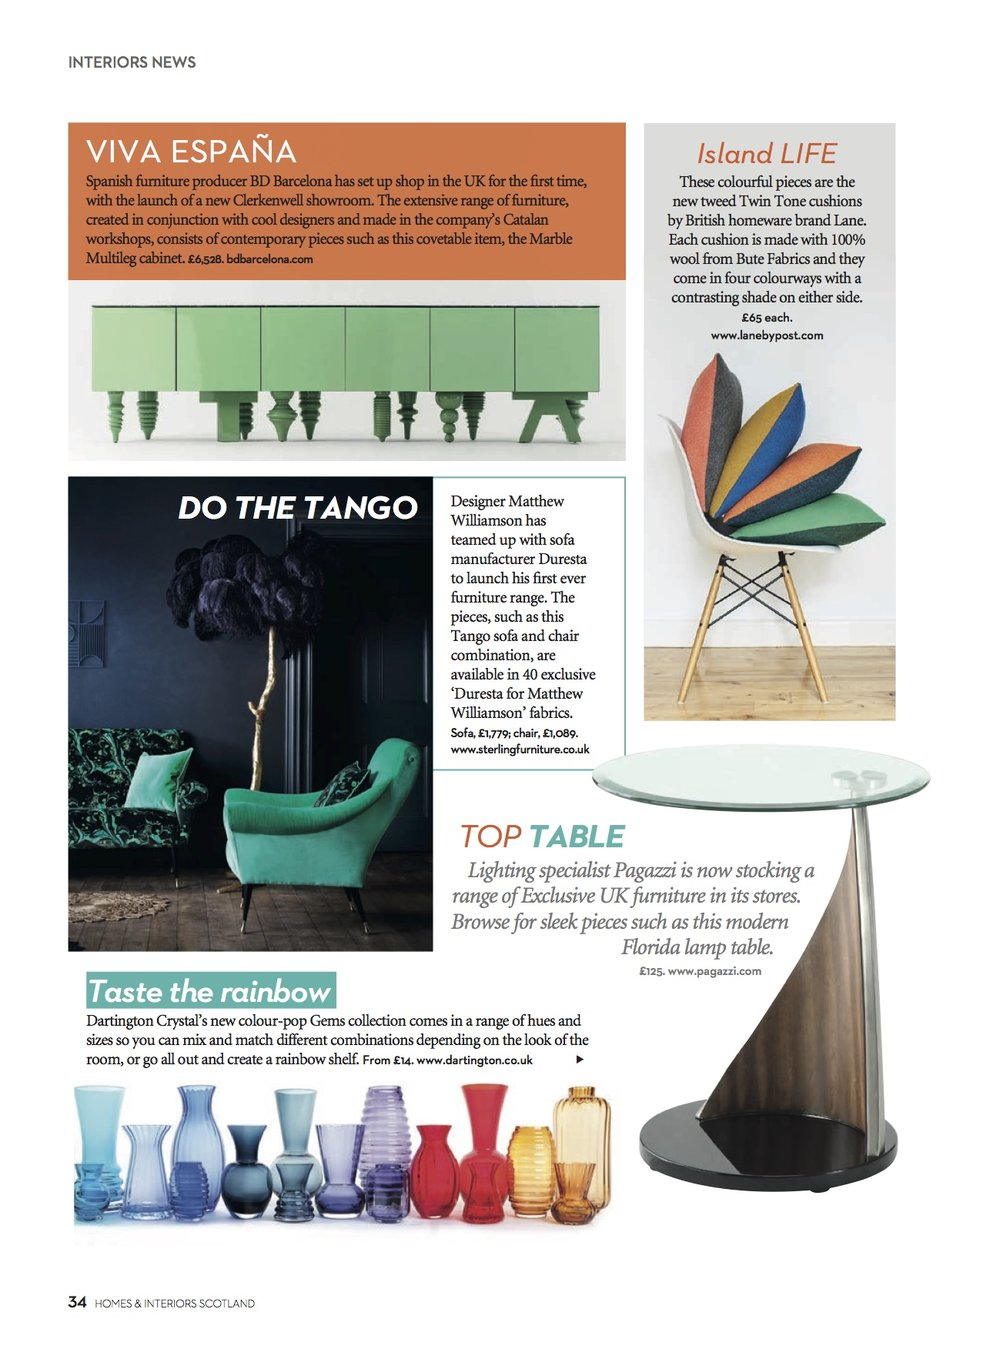 Homes & Interiors Scotland, October 2016, Lane & Little Greene Twin Tone Cushions